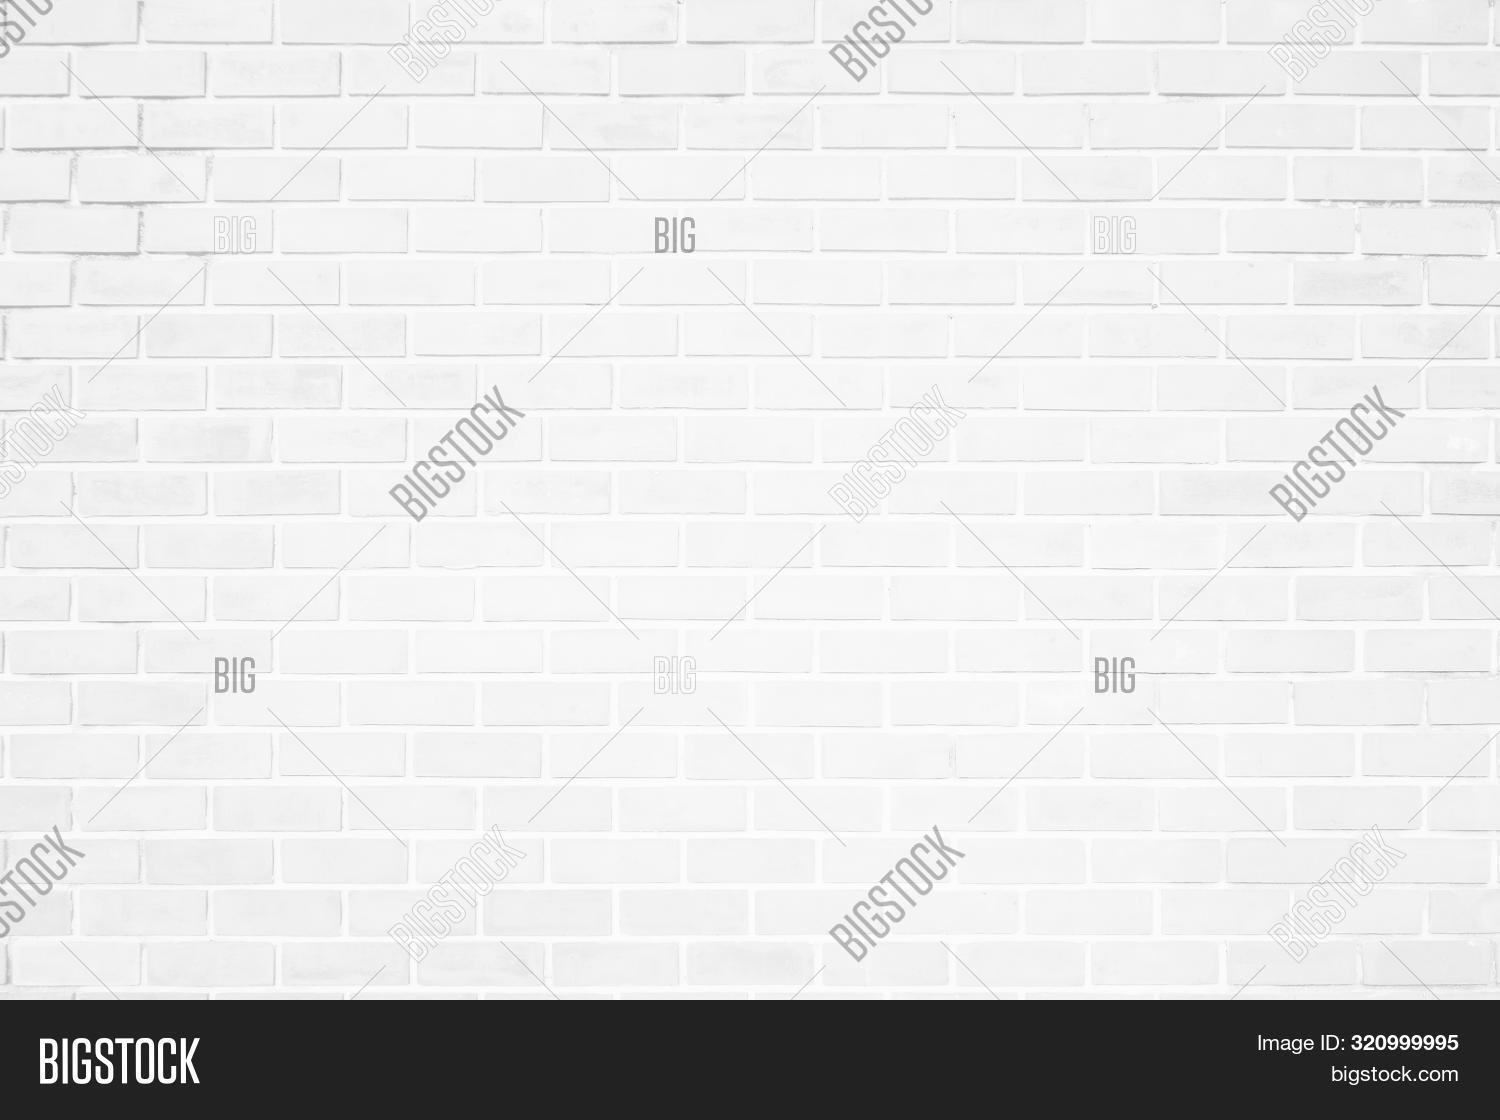 abstract,architecture,backdrop,background,black,block,brick,build,cement,clean,concrete,construction,exterior,facade,floor,grey,grunge,home,horizontal,interior,limestone,masonry,material,modern,old,outside,paint,paper,pattern,rectangle,room,rough,rustic,solid,space,stained,stone,street,structure,subway,surface,texture,tile,uneven,urban,vintage,wall,wallpaper,white